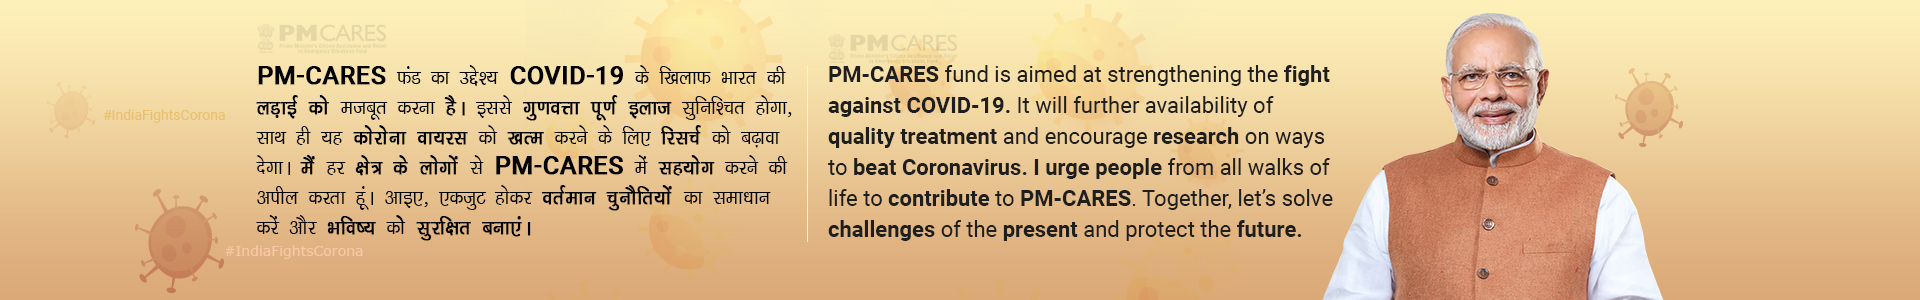 PM's message on COVID-19 - Banner